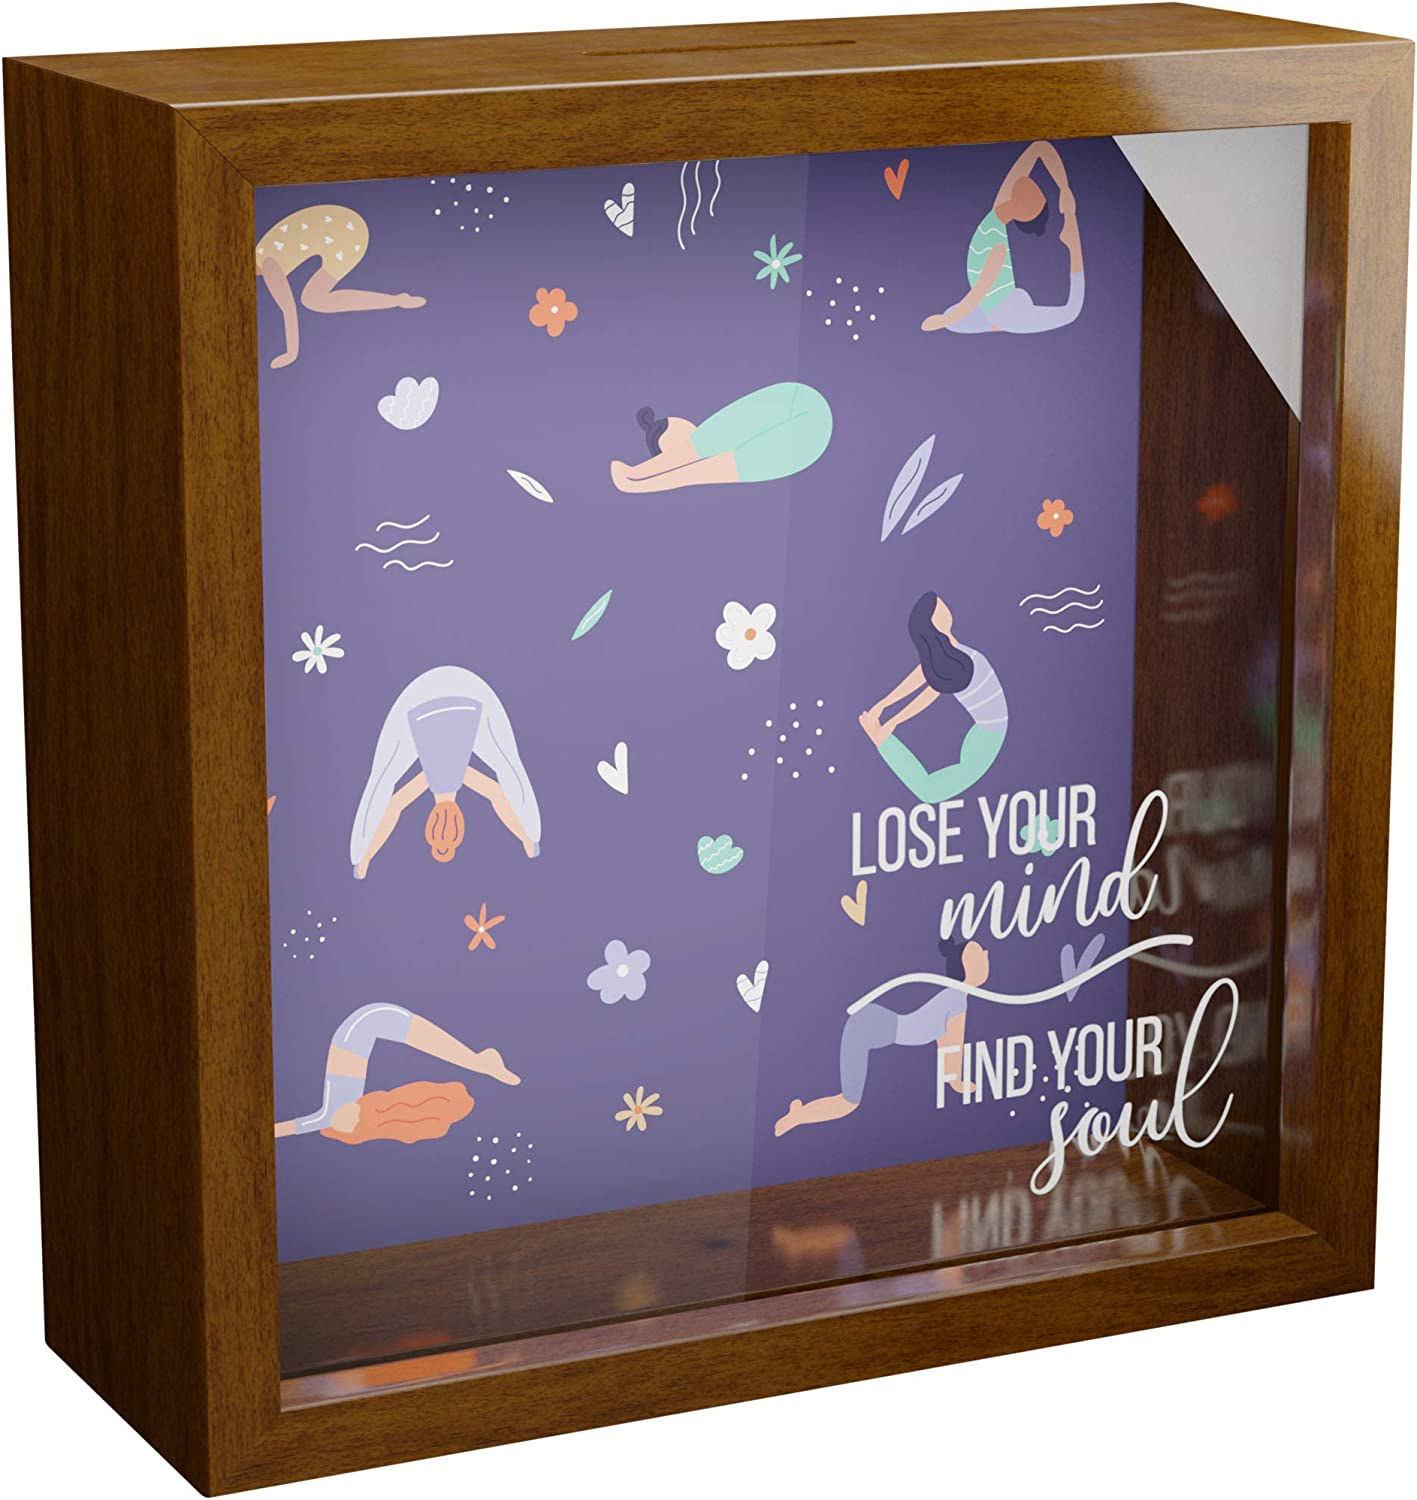 Yoga Gifts   6x6x2 Wooden Shadow Box   Great Gift for Yoga Lover   Glass Fronted Memory Box for Women   Zen Inspired Wall Decor for Home & Studio   Special Keepsake Present for Yoga Instructor